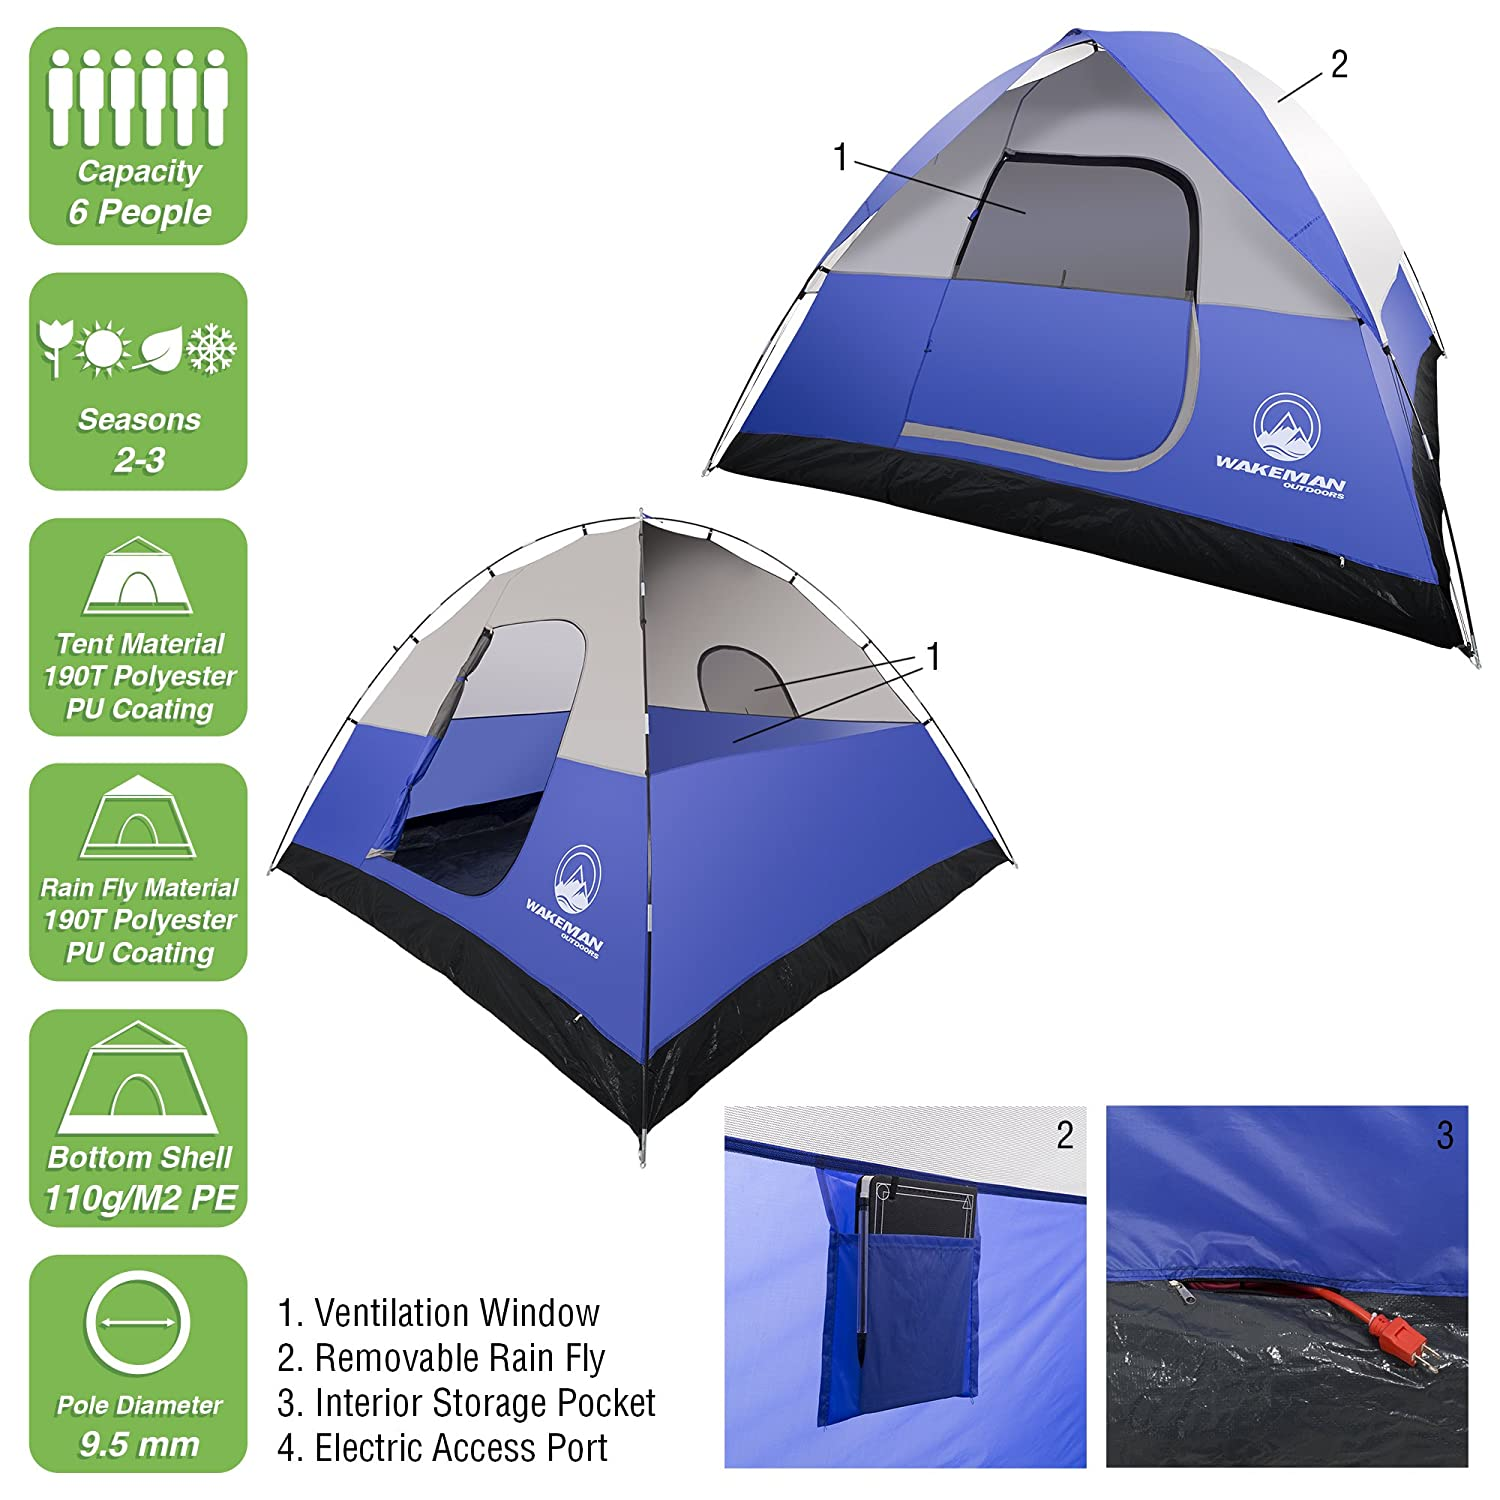 cc0c4ffab 6-Person Tent, Water Resistant Dome Tent for Camping with Removable Rain  Fly and Carry Bag, Rebel Bay 6 Person Tent by Wakeman Outdoors